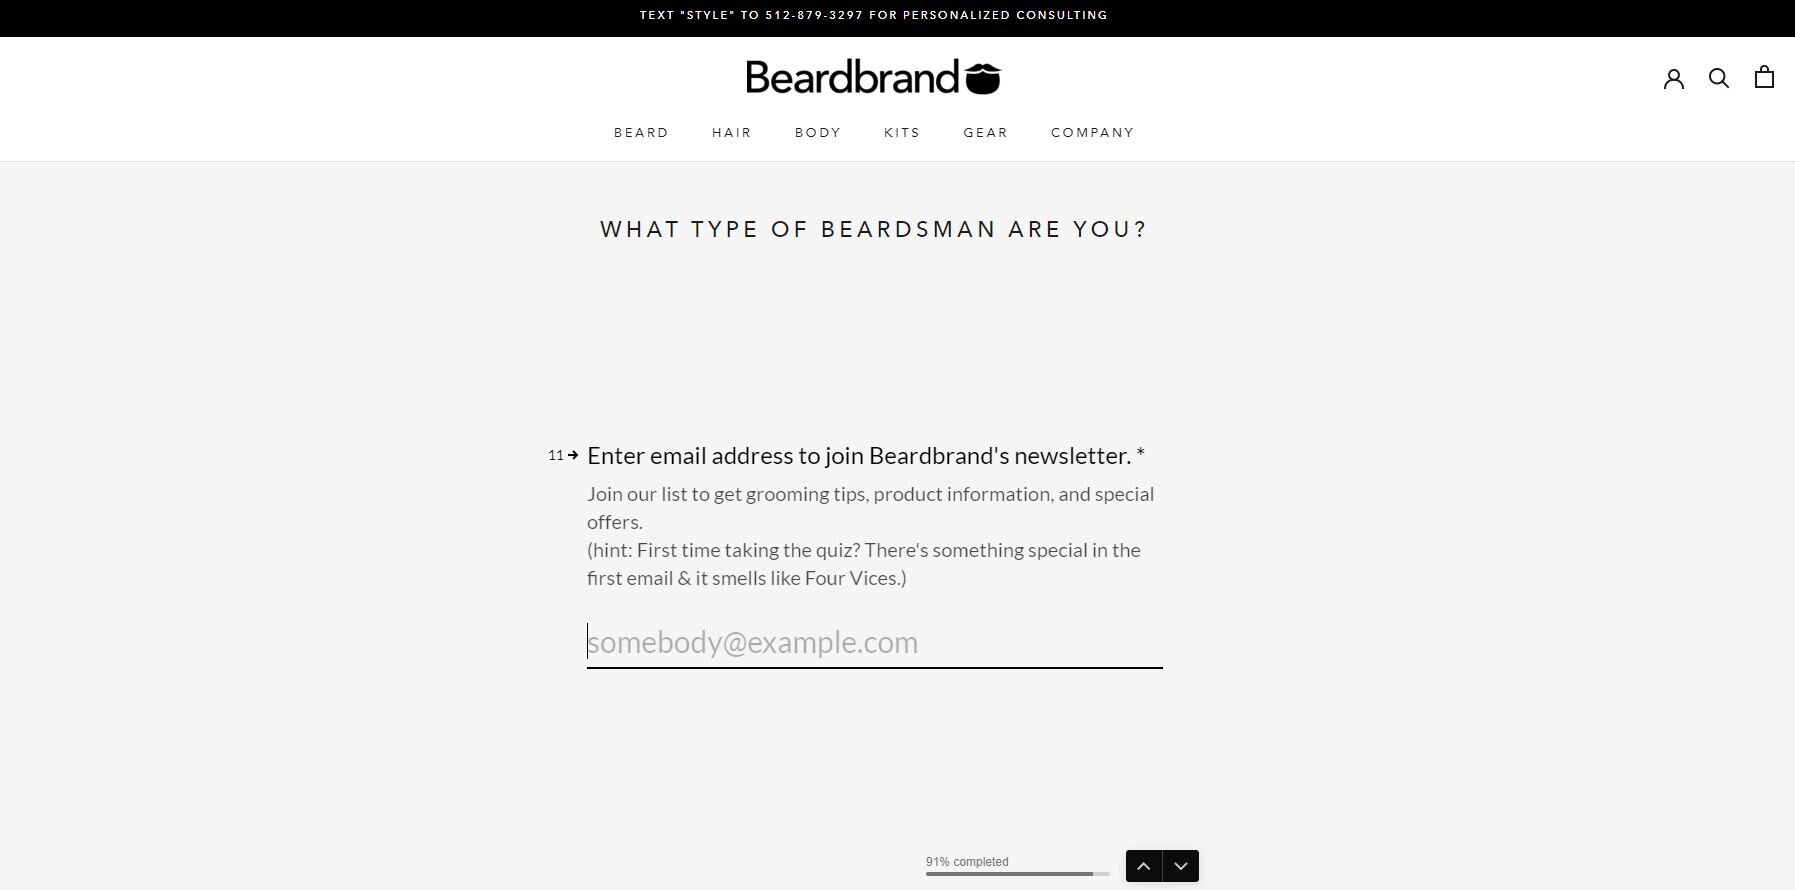 Beardbrand-Quiz-12.JPG